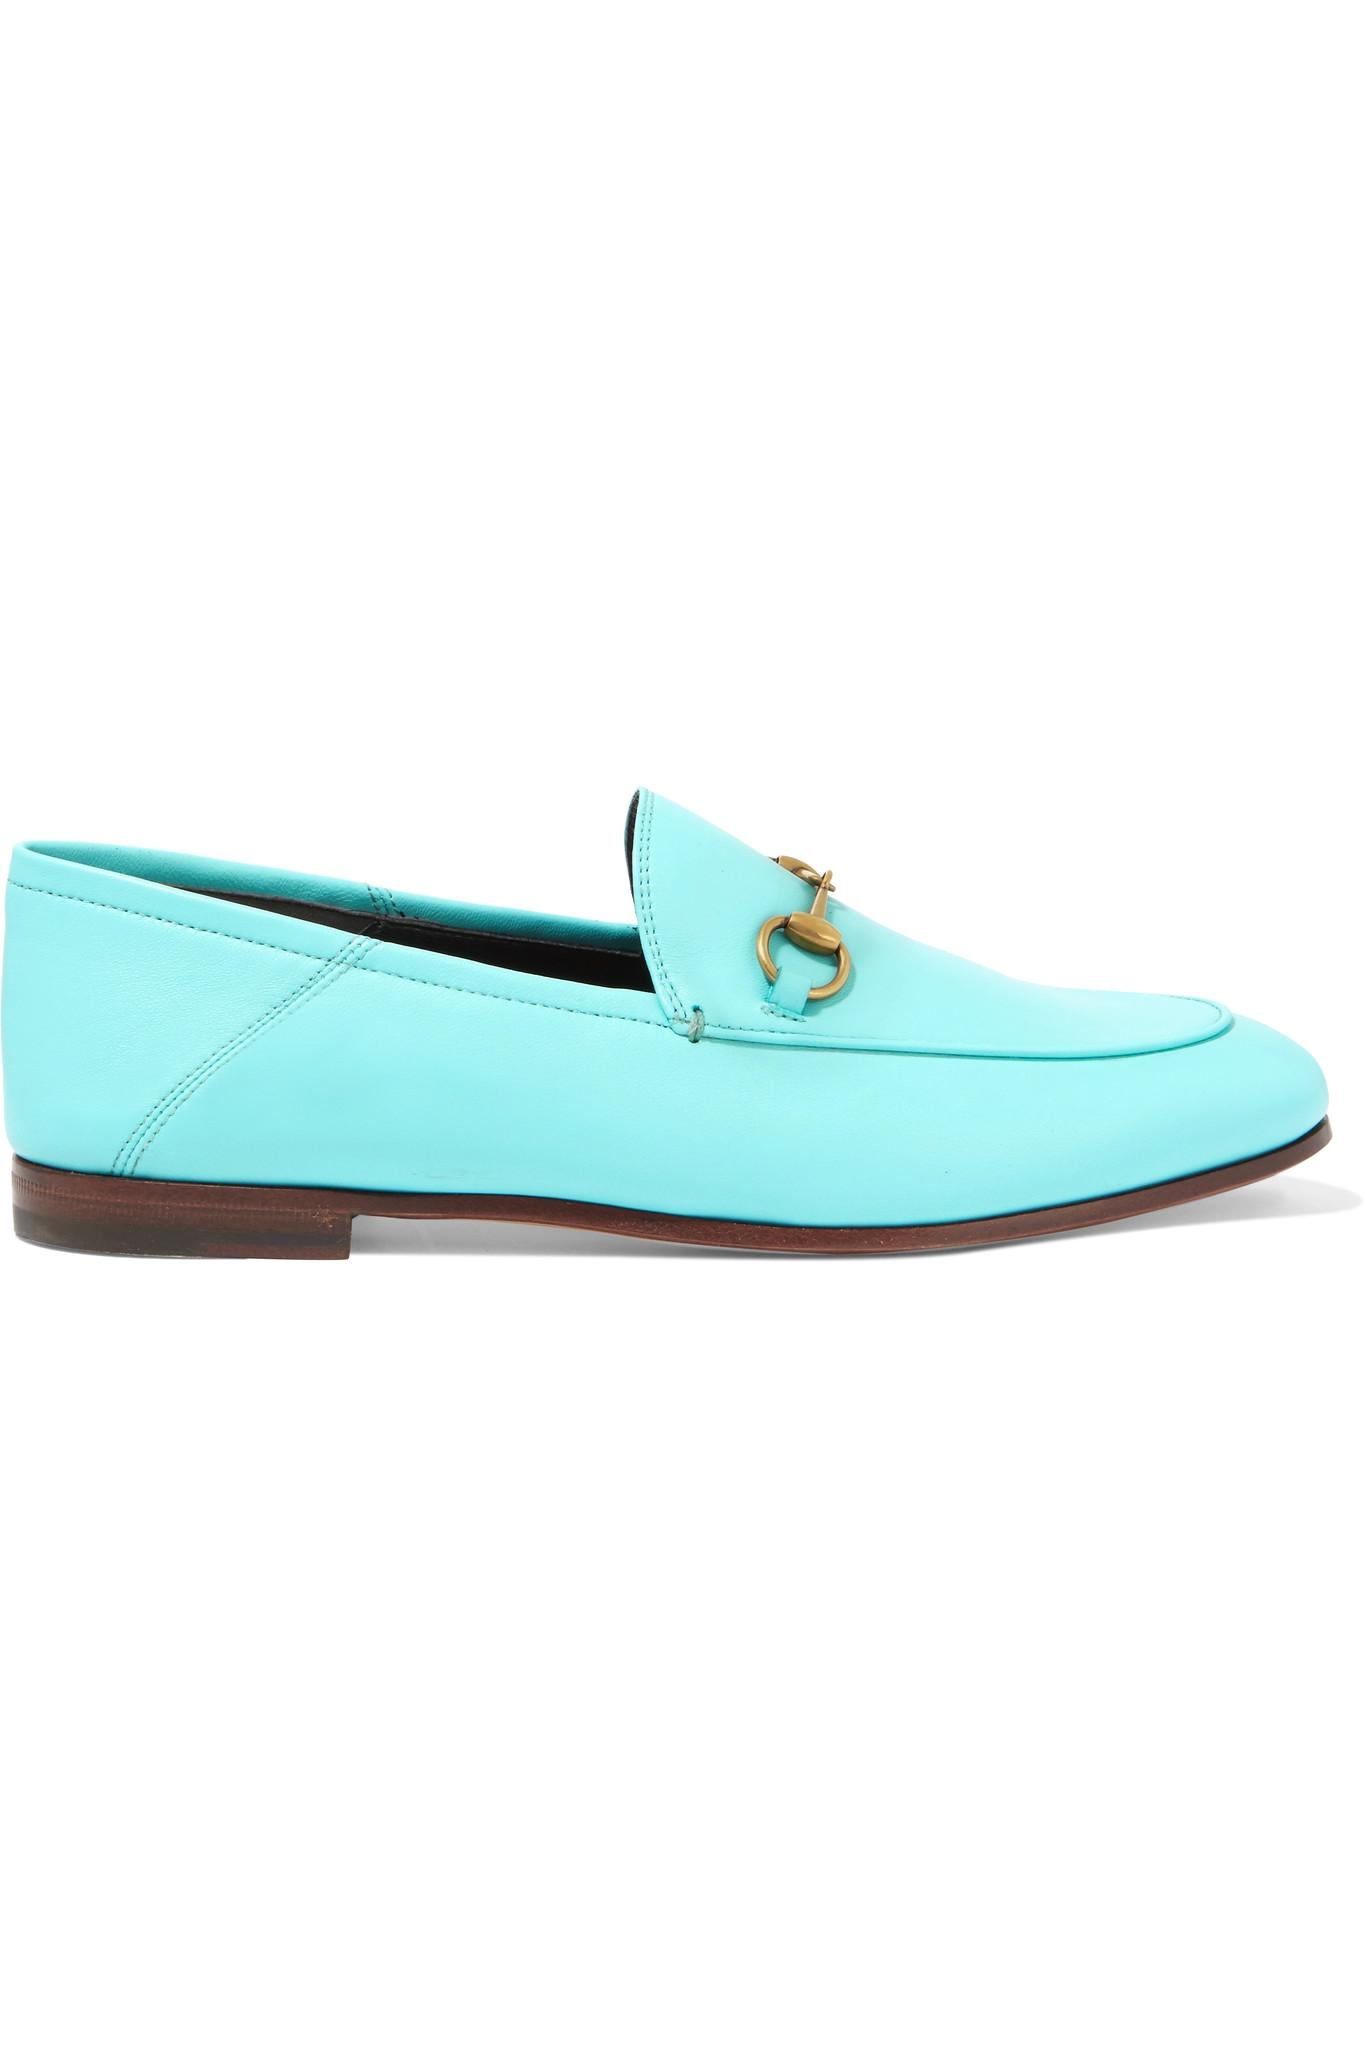 a6868a391ea Lyst - Gucci Horsebit-detailed Leather Loafers in Blue